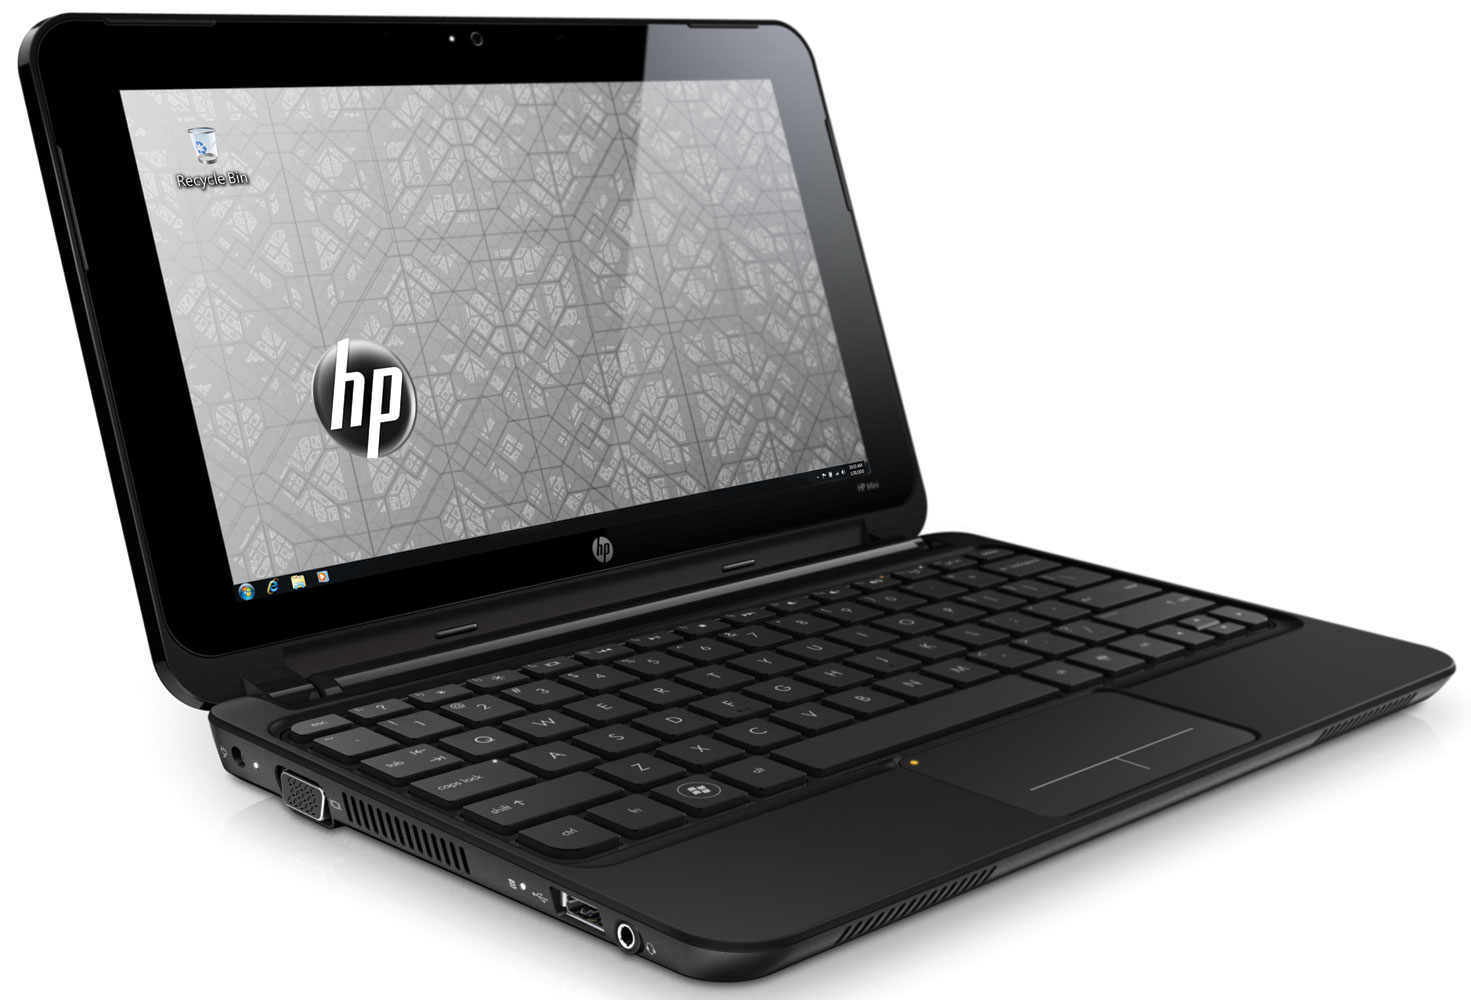 HP Mini 110-1110EA Notebook Webcam Drivers for Windows Download